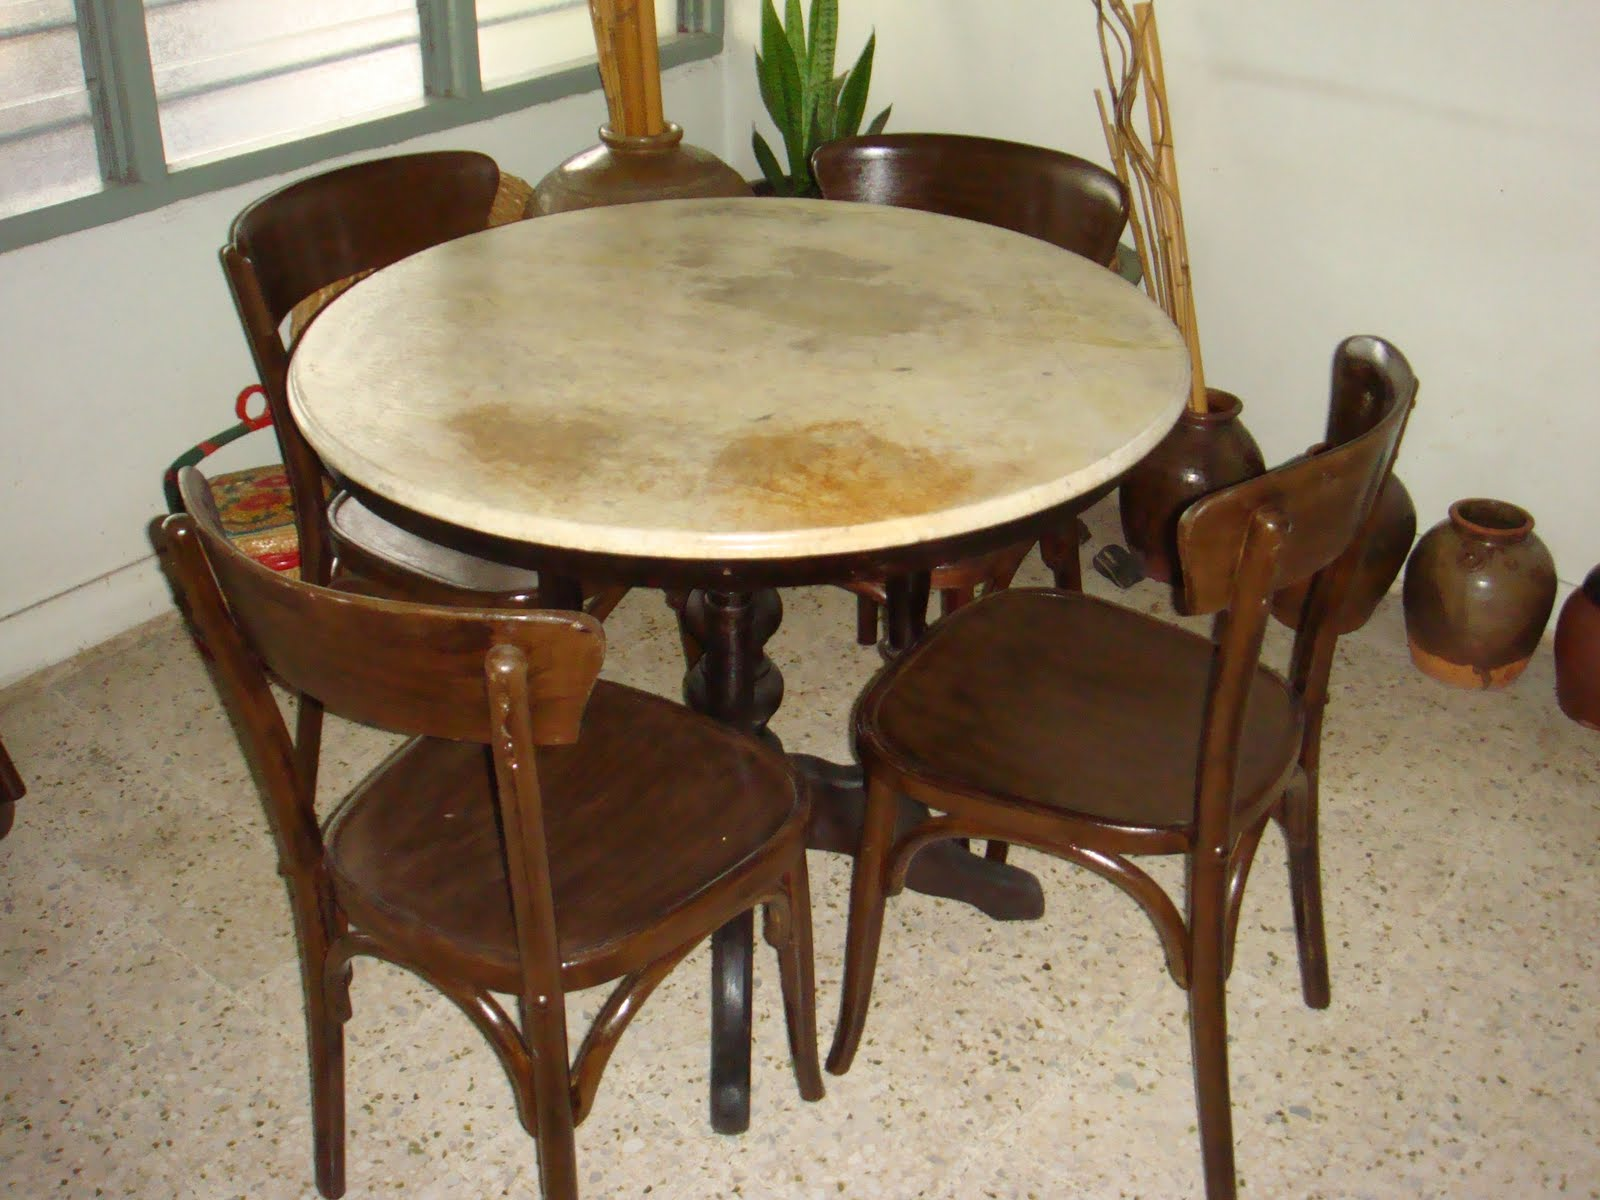 Japanese Dining Table For Sale Asian Antiquues Kopitiam Antique Marble Table Sold